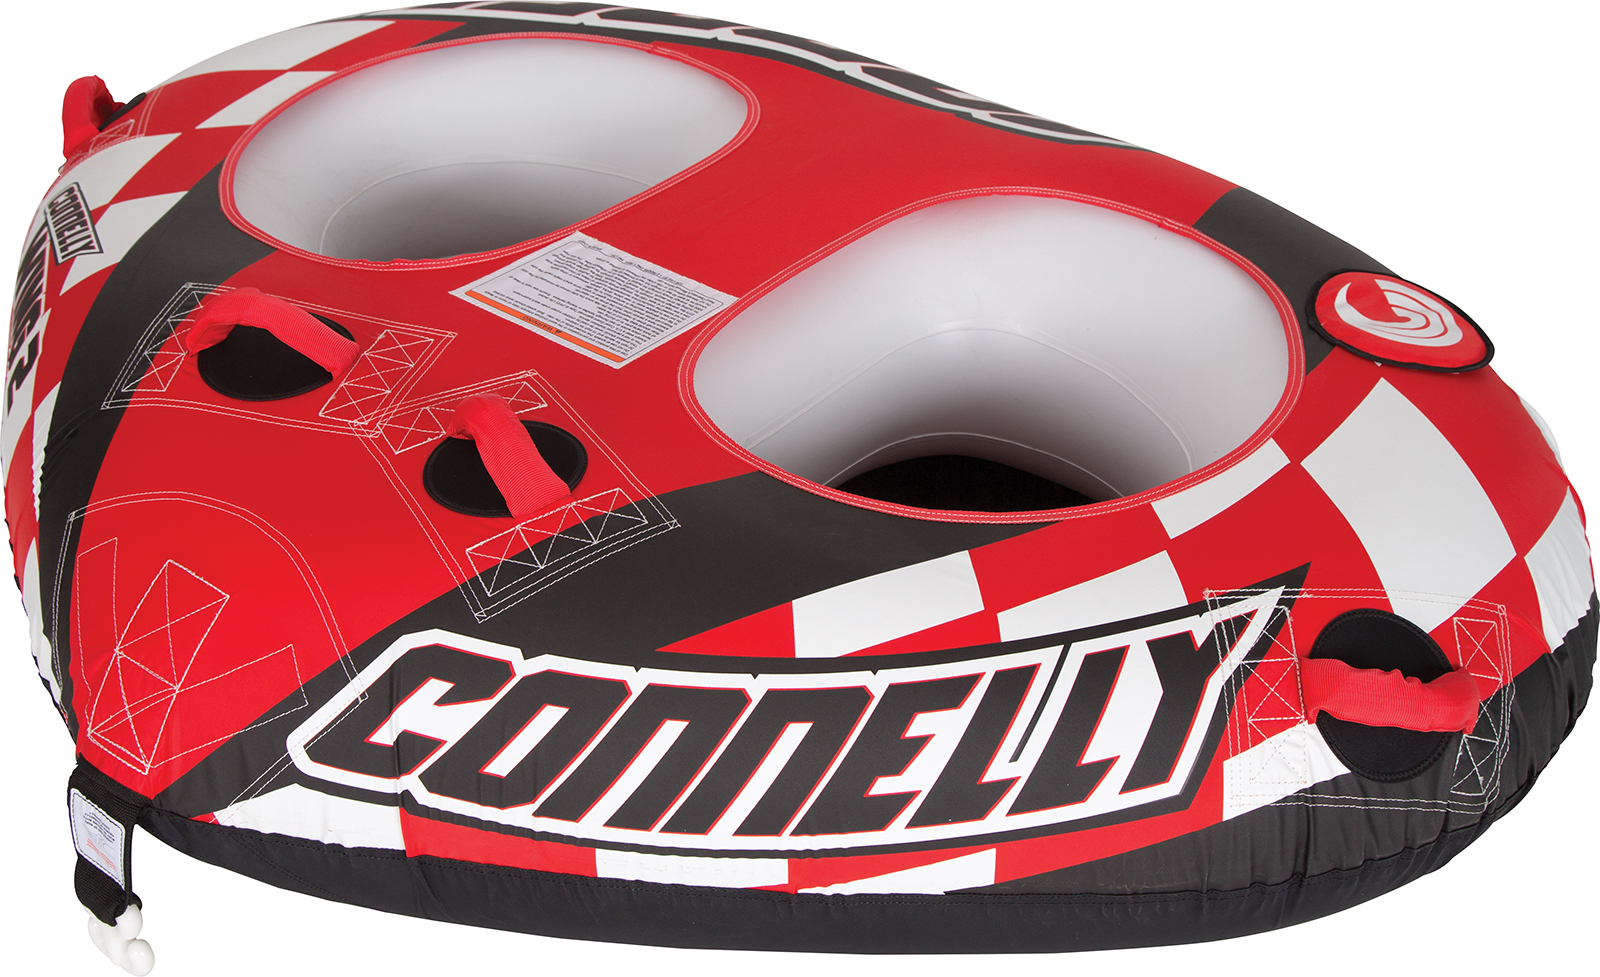 WING TWO TOWABLE TUBE CONNELLY 2019